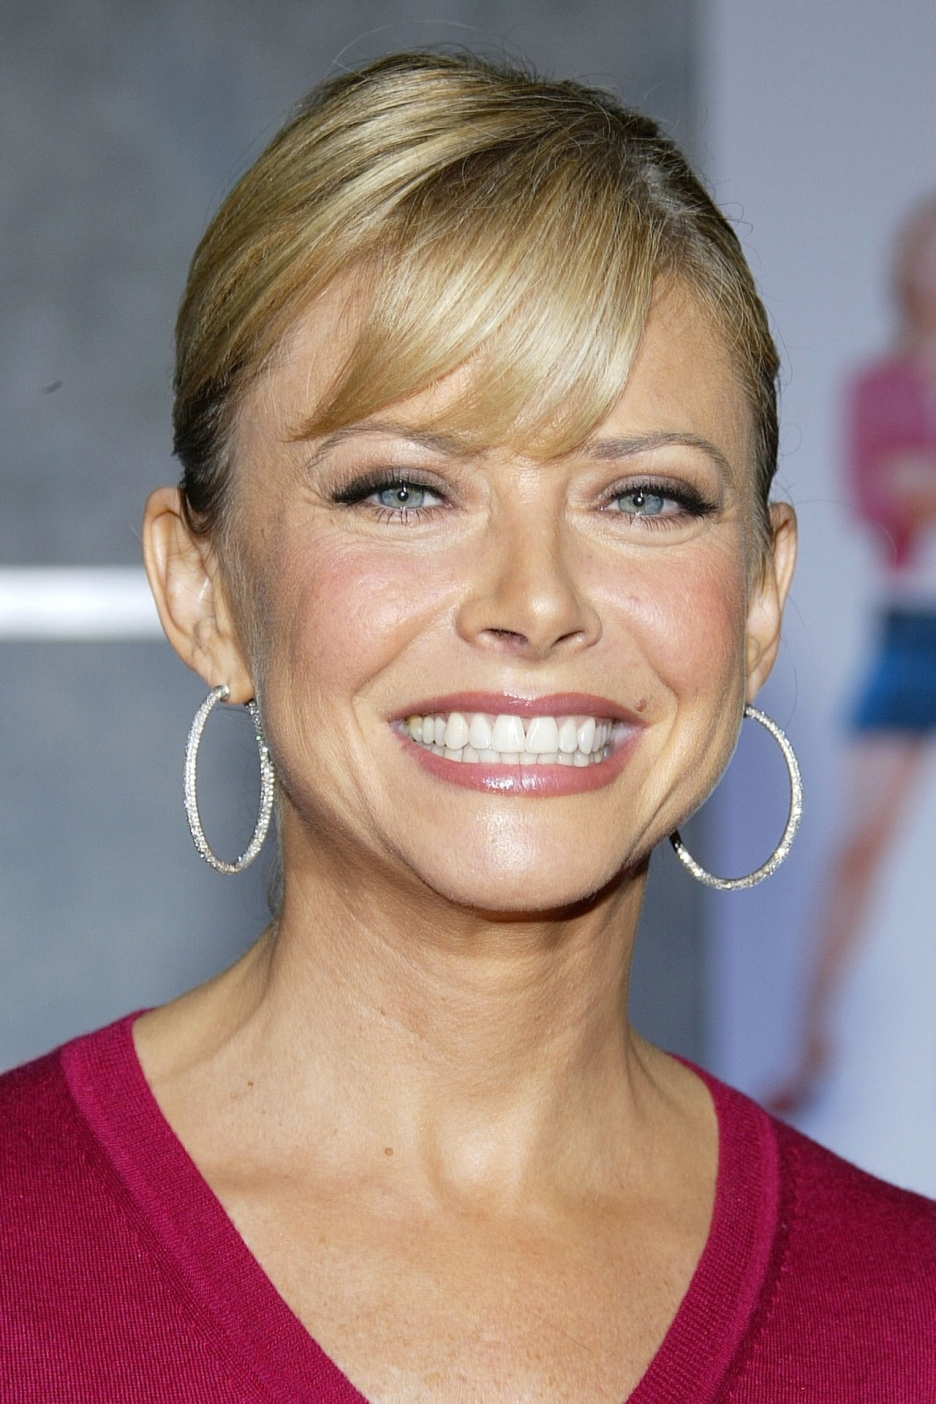 faith ford graves diseasefaith ford instagram, faith ford, faith ford actress, faith ford 2015, faith ford imdb, faith ford net worth, faith ford age, faith ford hot, faith ford movies, faith ford hallmark movies, faith ford measurements, faith ford graves disease, faith ford hallmark christmas movie, faith ford and campion murphy, faith ford family, faith ford and ted mcginley, faith ford the middle